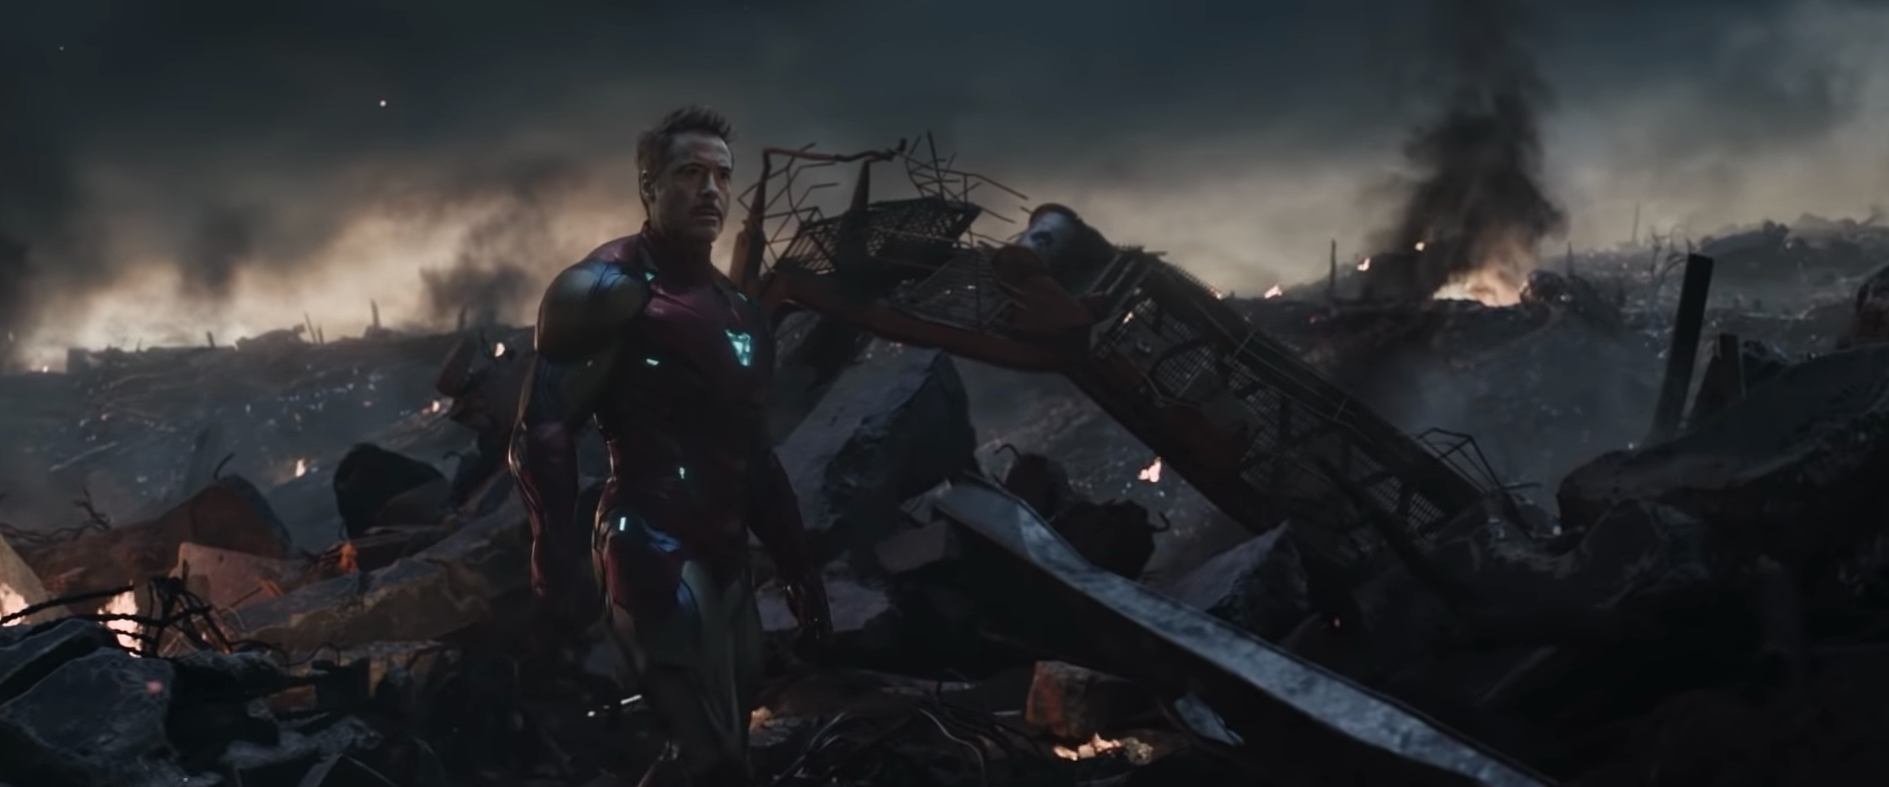 avengers-endgame-final-trailer-15.png